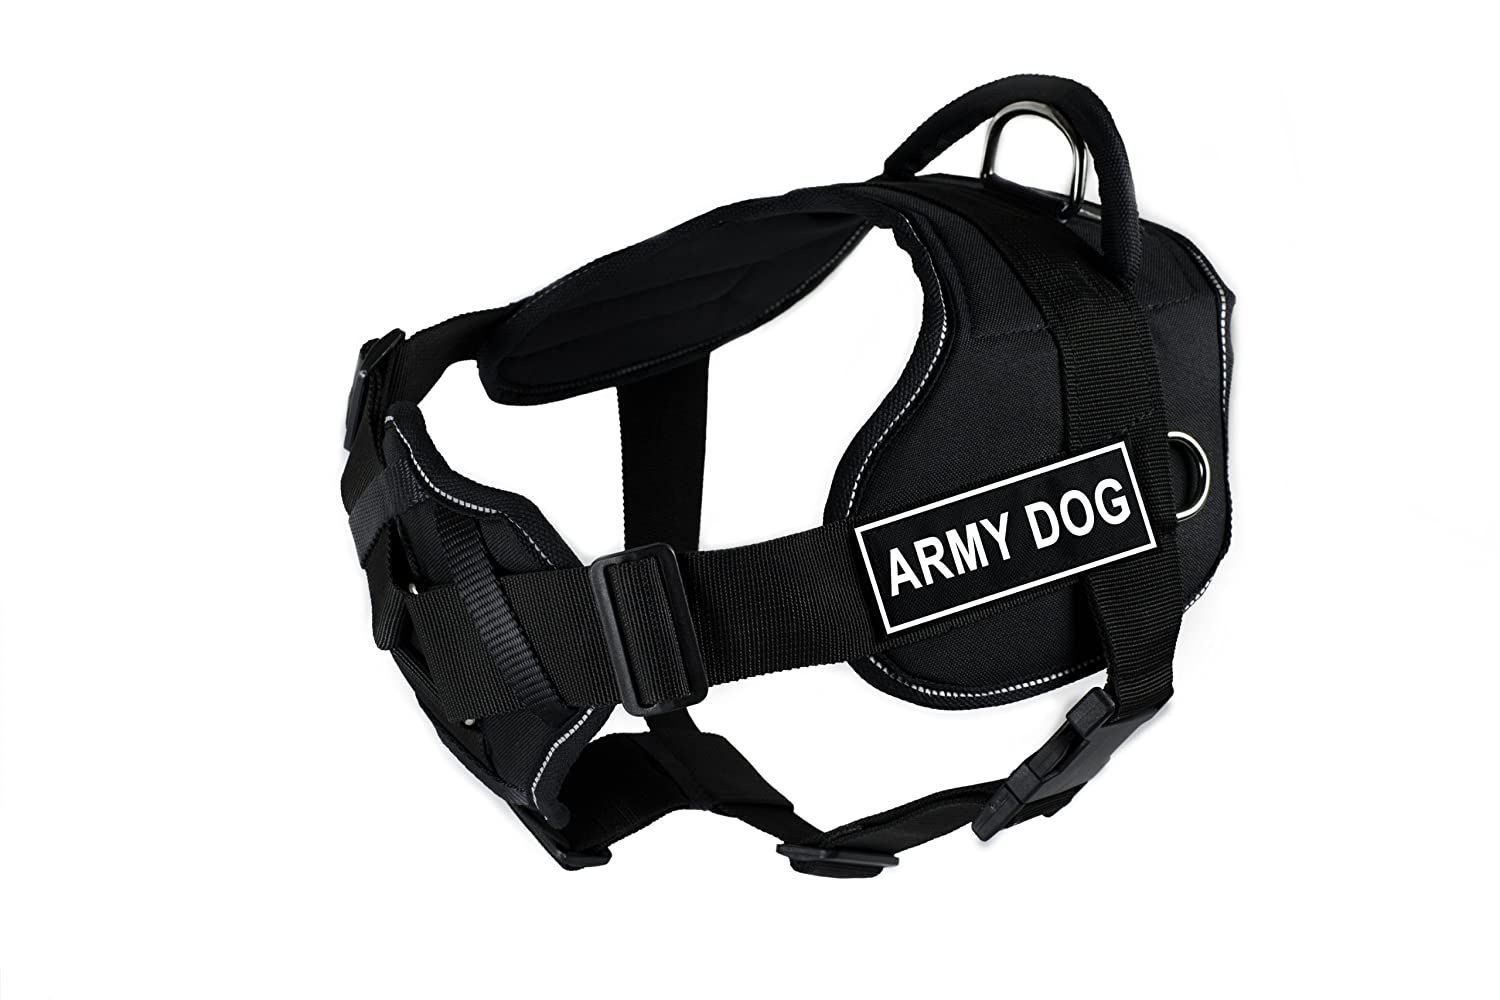 Dean & Tyler Fun Works Army Dog Harness with Padded Chest Piece, X-Large, Fits Girth Size  34-Inch to 47-Inch, Black with Reflective Trim